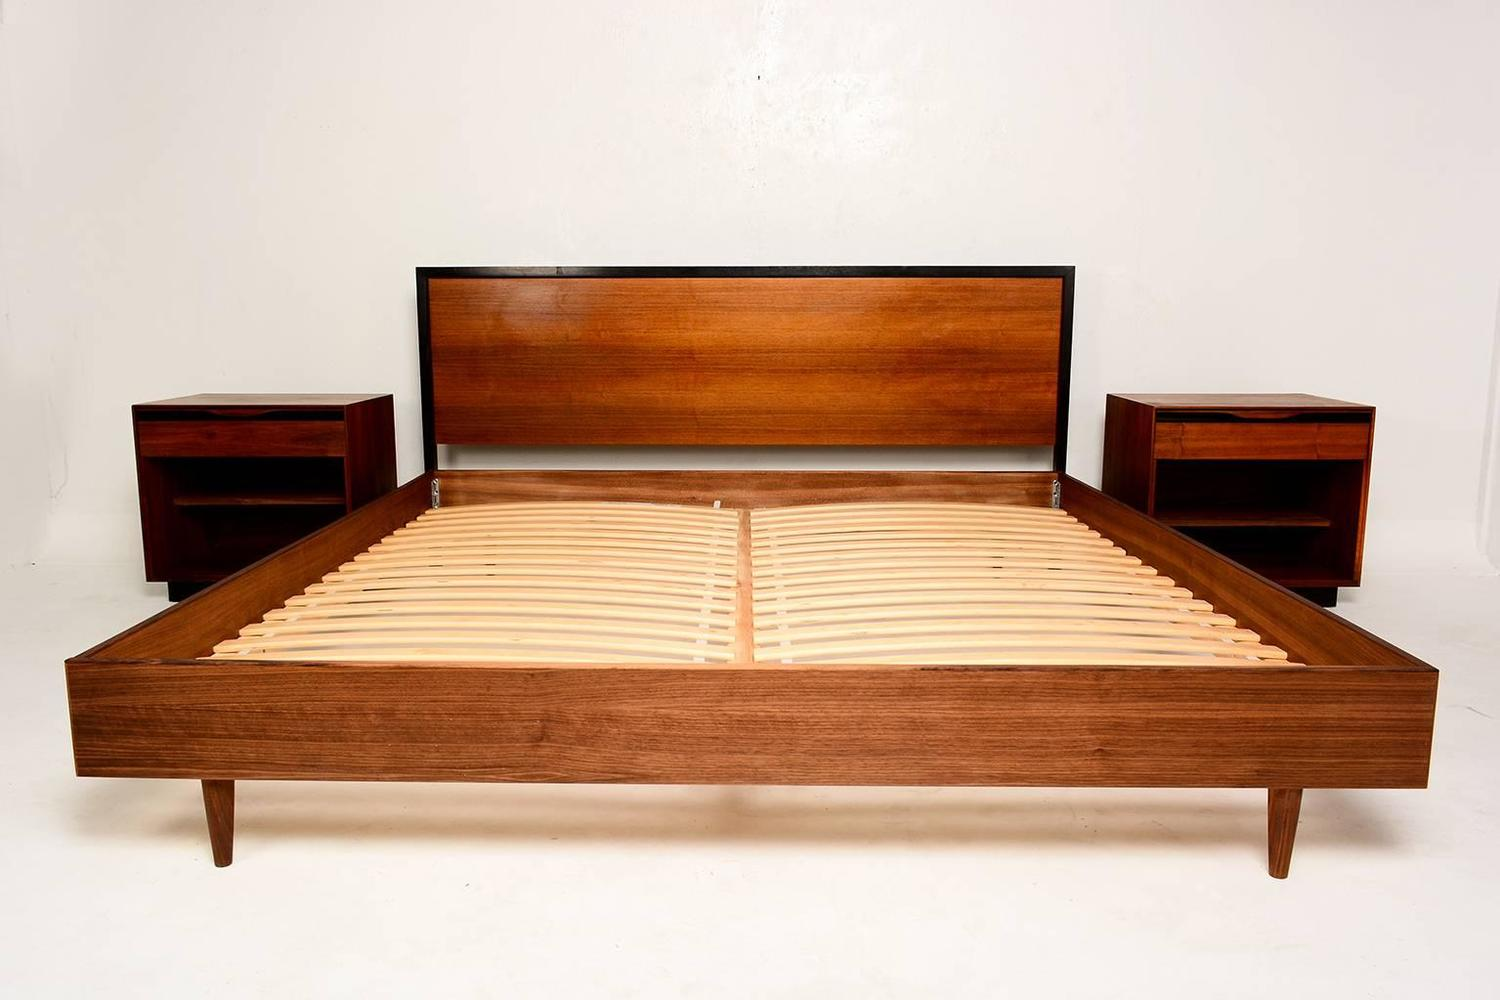 King Size Platform Bed Related Keywords & Suggestions - King Size ...